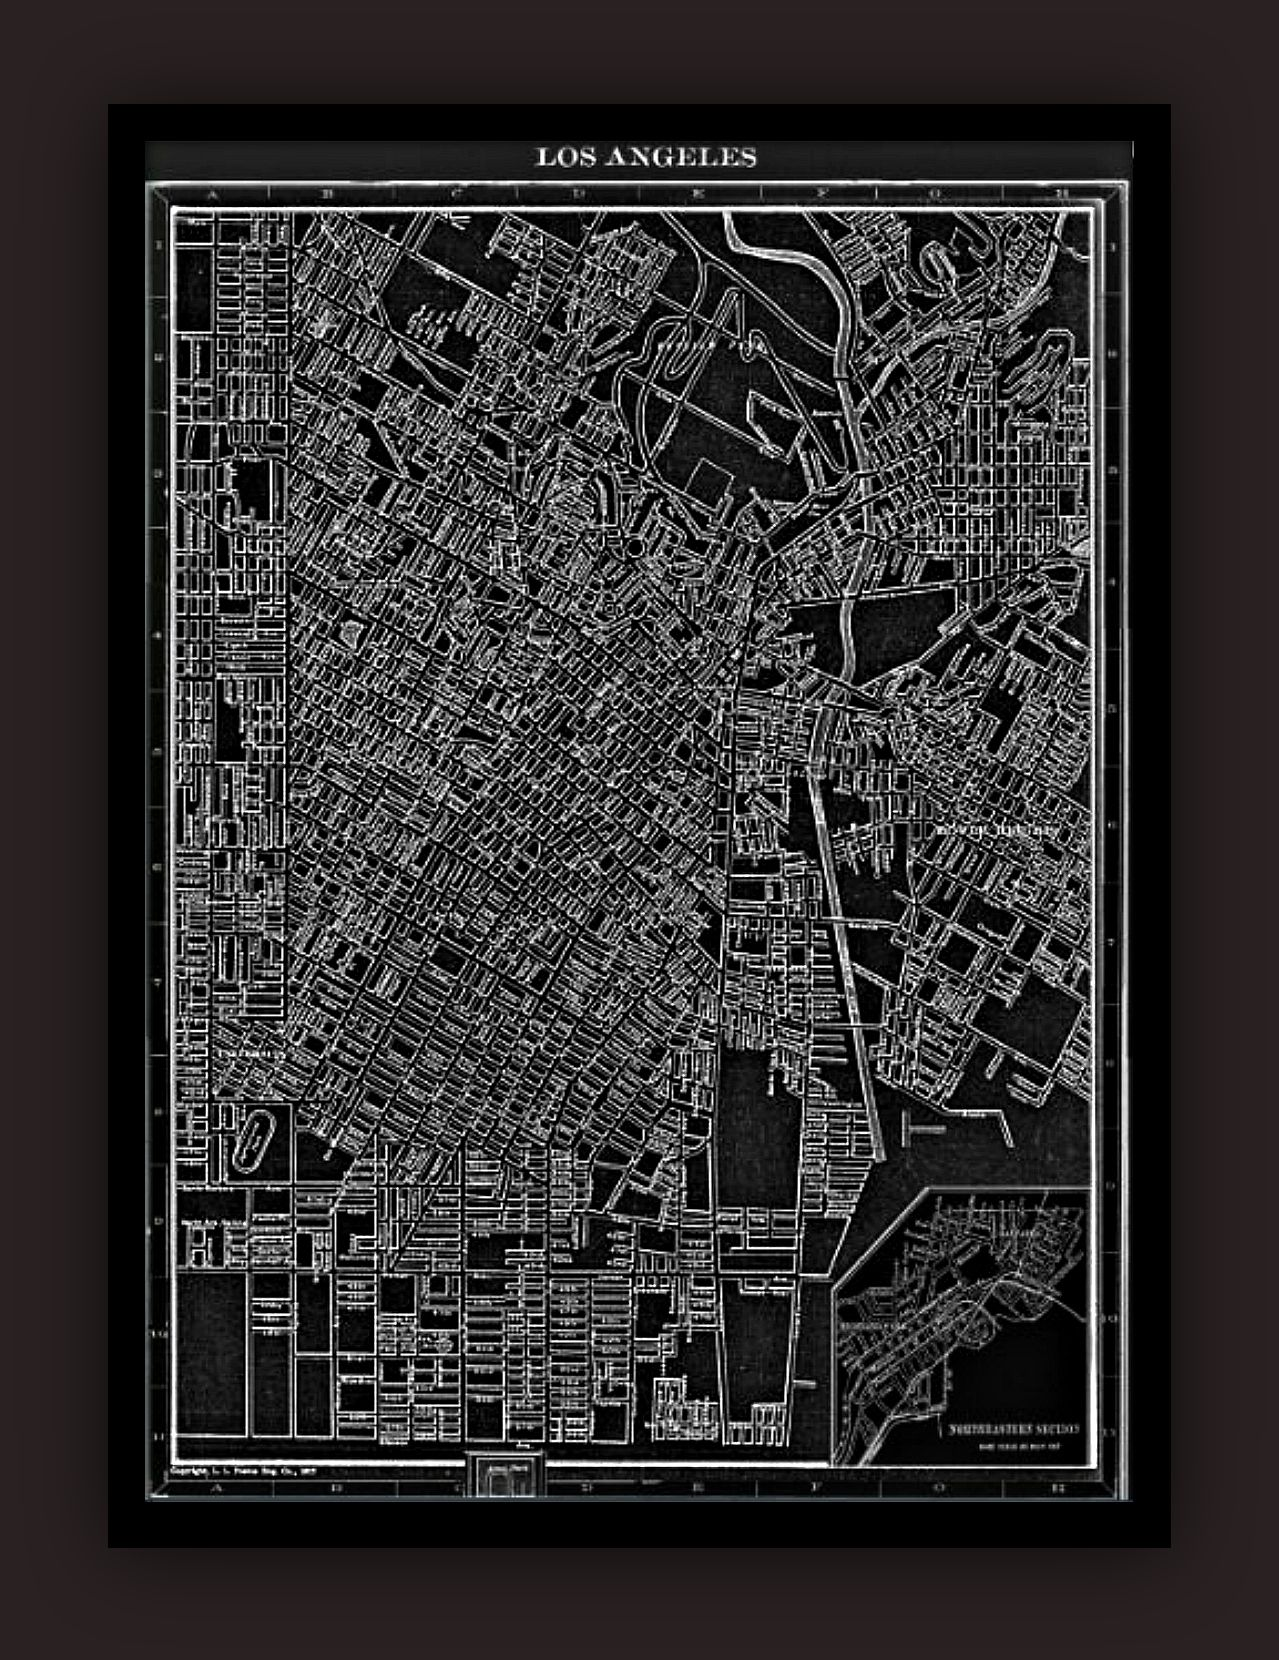 Los Angeles Early S Lithograph Map Vintage Lithograph Maps - Los angeles poster black and white